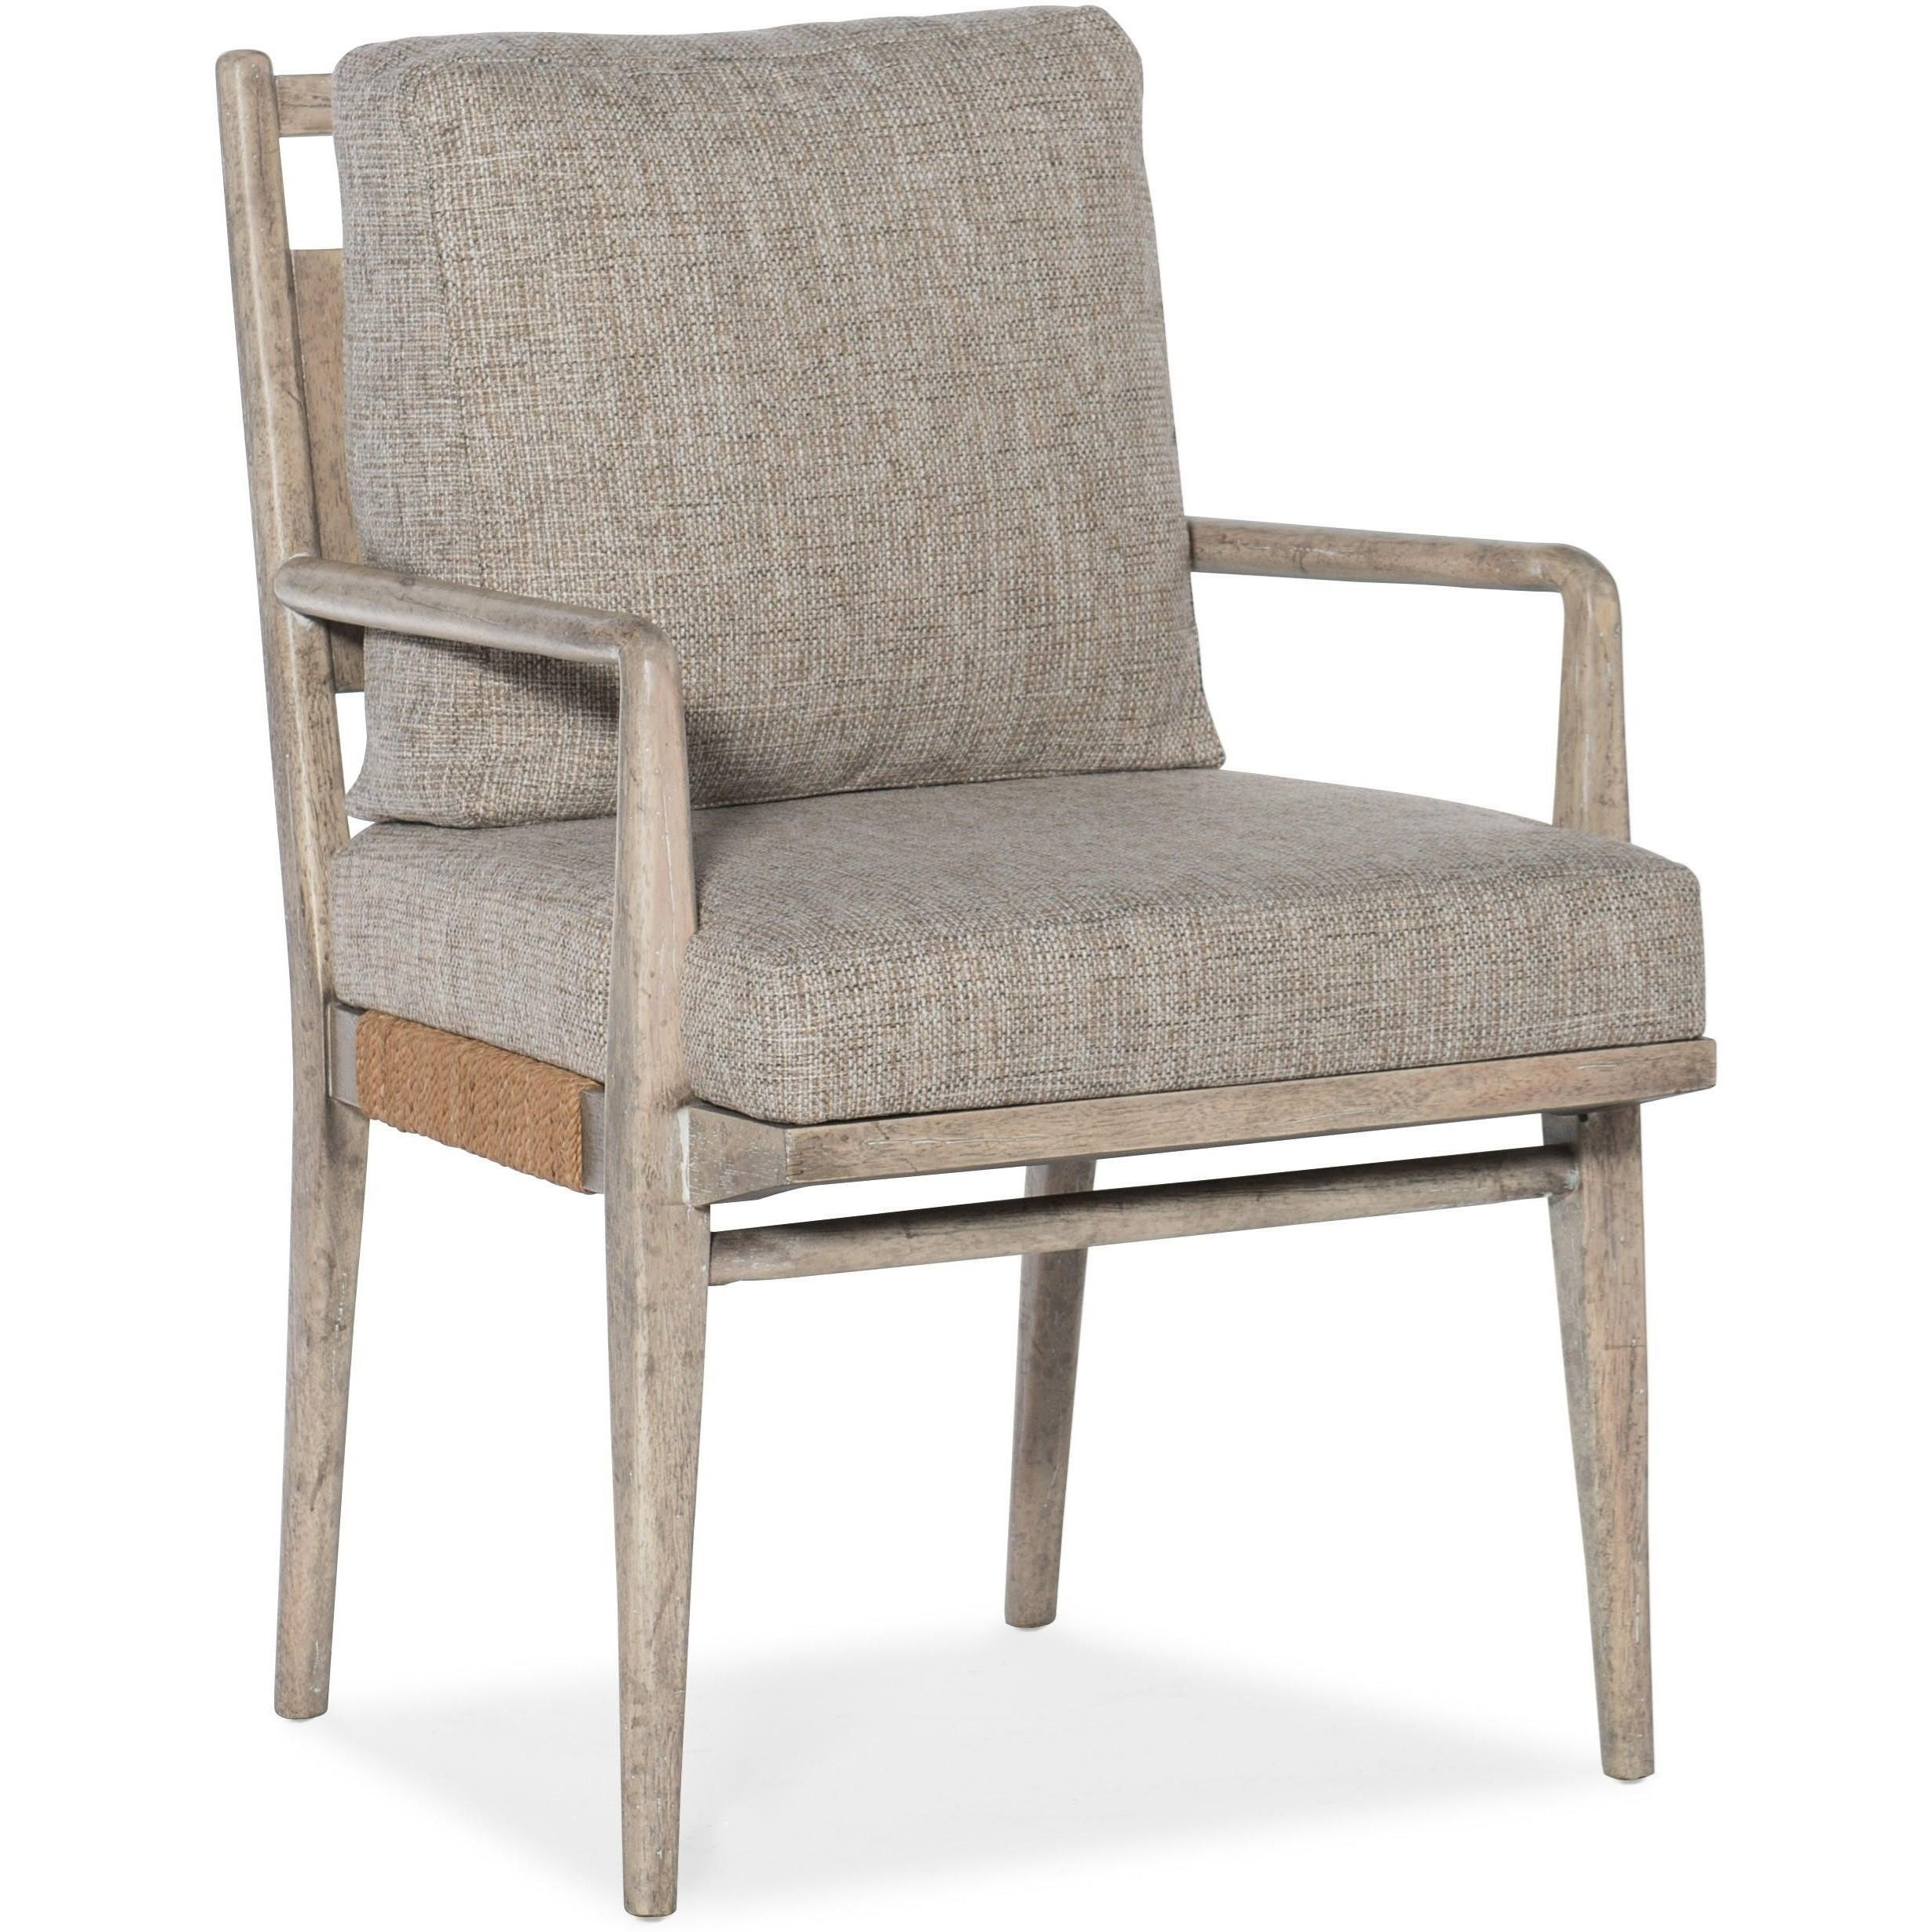 American Life-Amani Upholstered Arm Chair by Hooker Furniture at Baer's Furniture